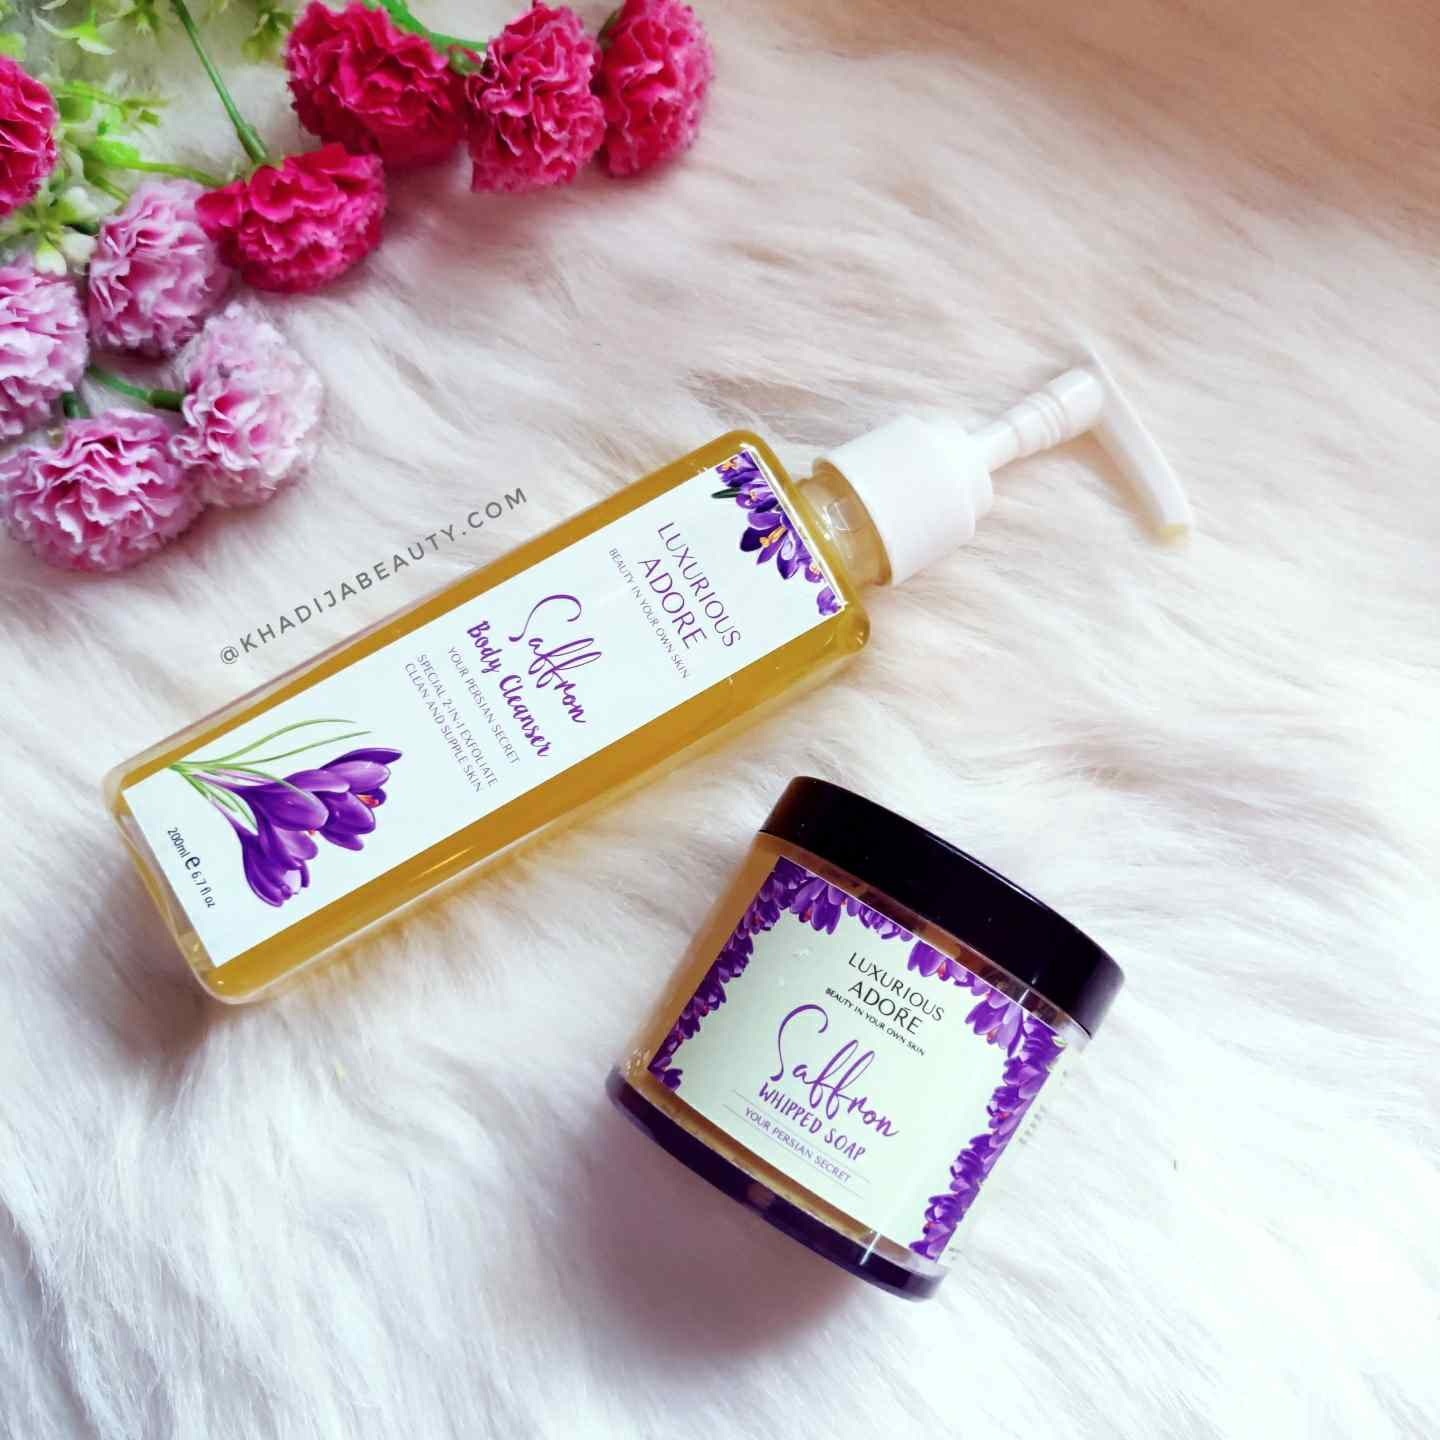 Luxurious adore Saffron whipped soap and body washreview